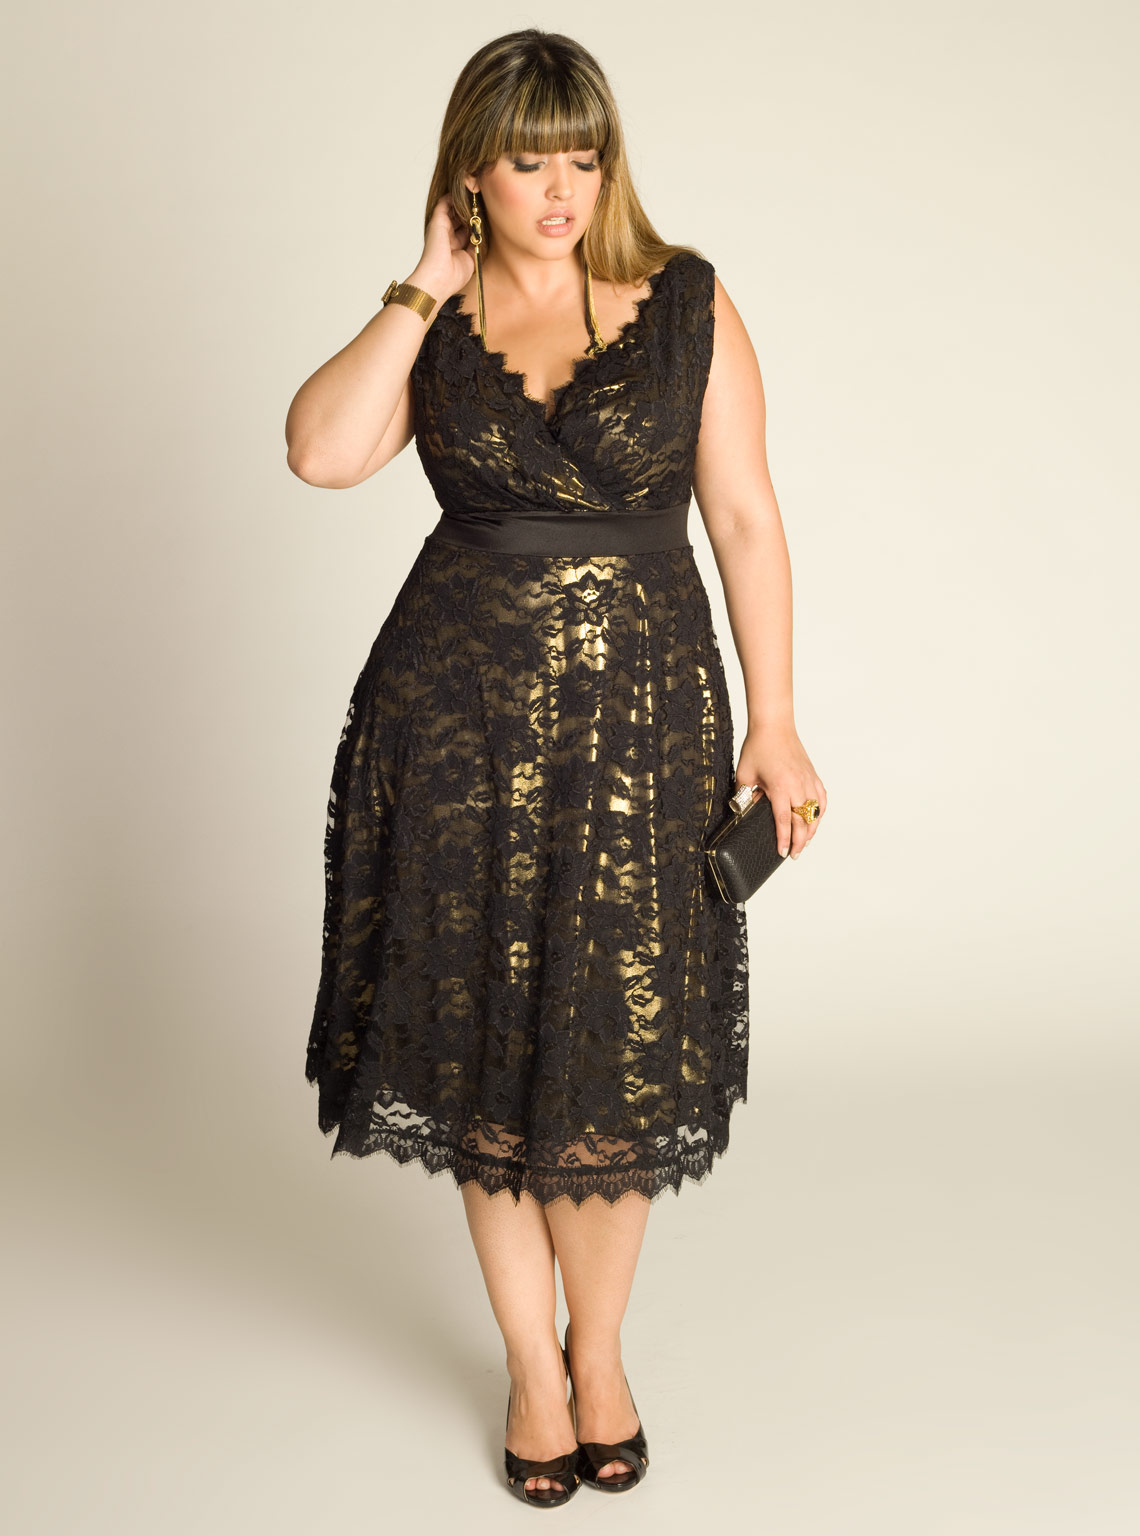 Plus Size Vintage Tail Dresses